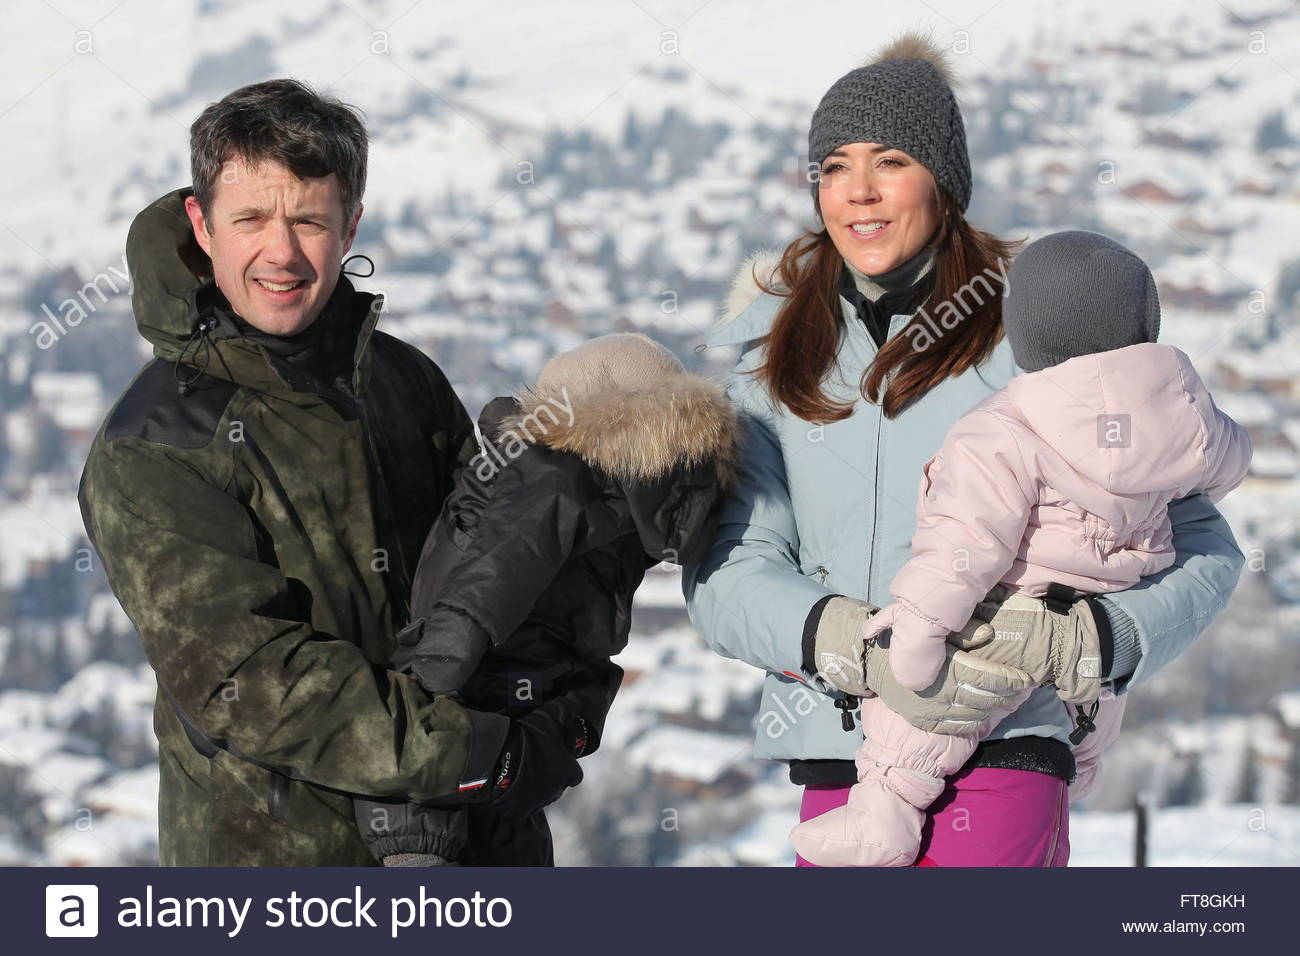 danish-crown-prince-frederik-l-his-wife-crown-princess-mary-r-and-FT8GKH.jpg